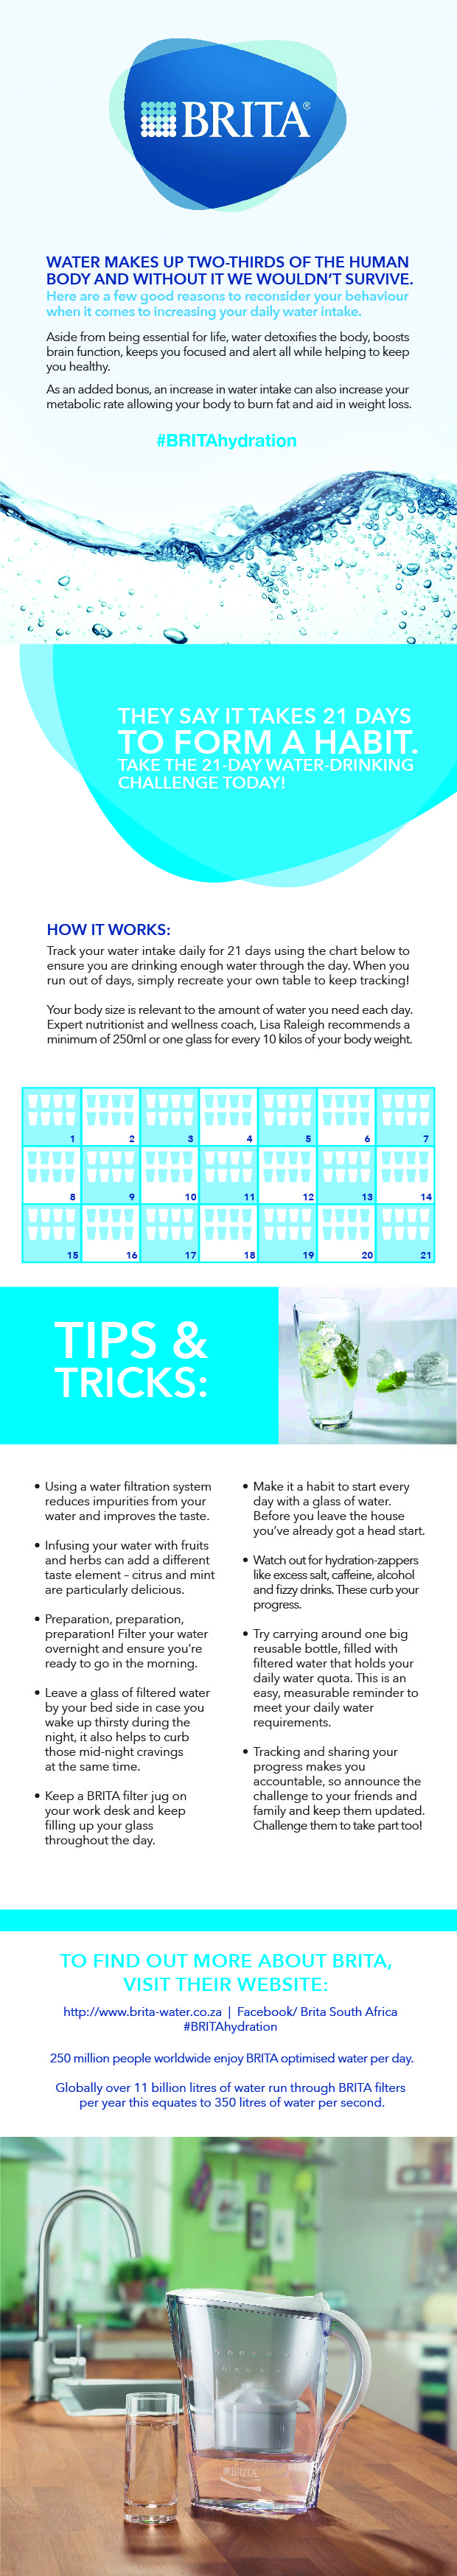 Brita Pocket Guide_Finals_single-05